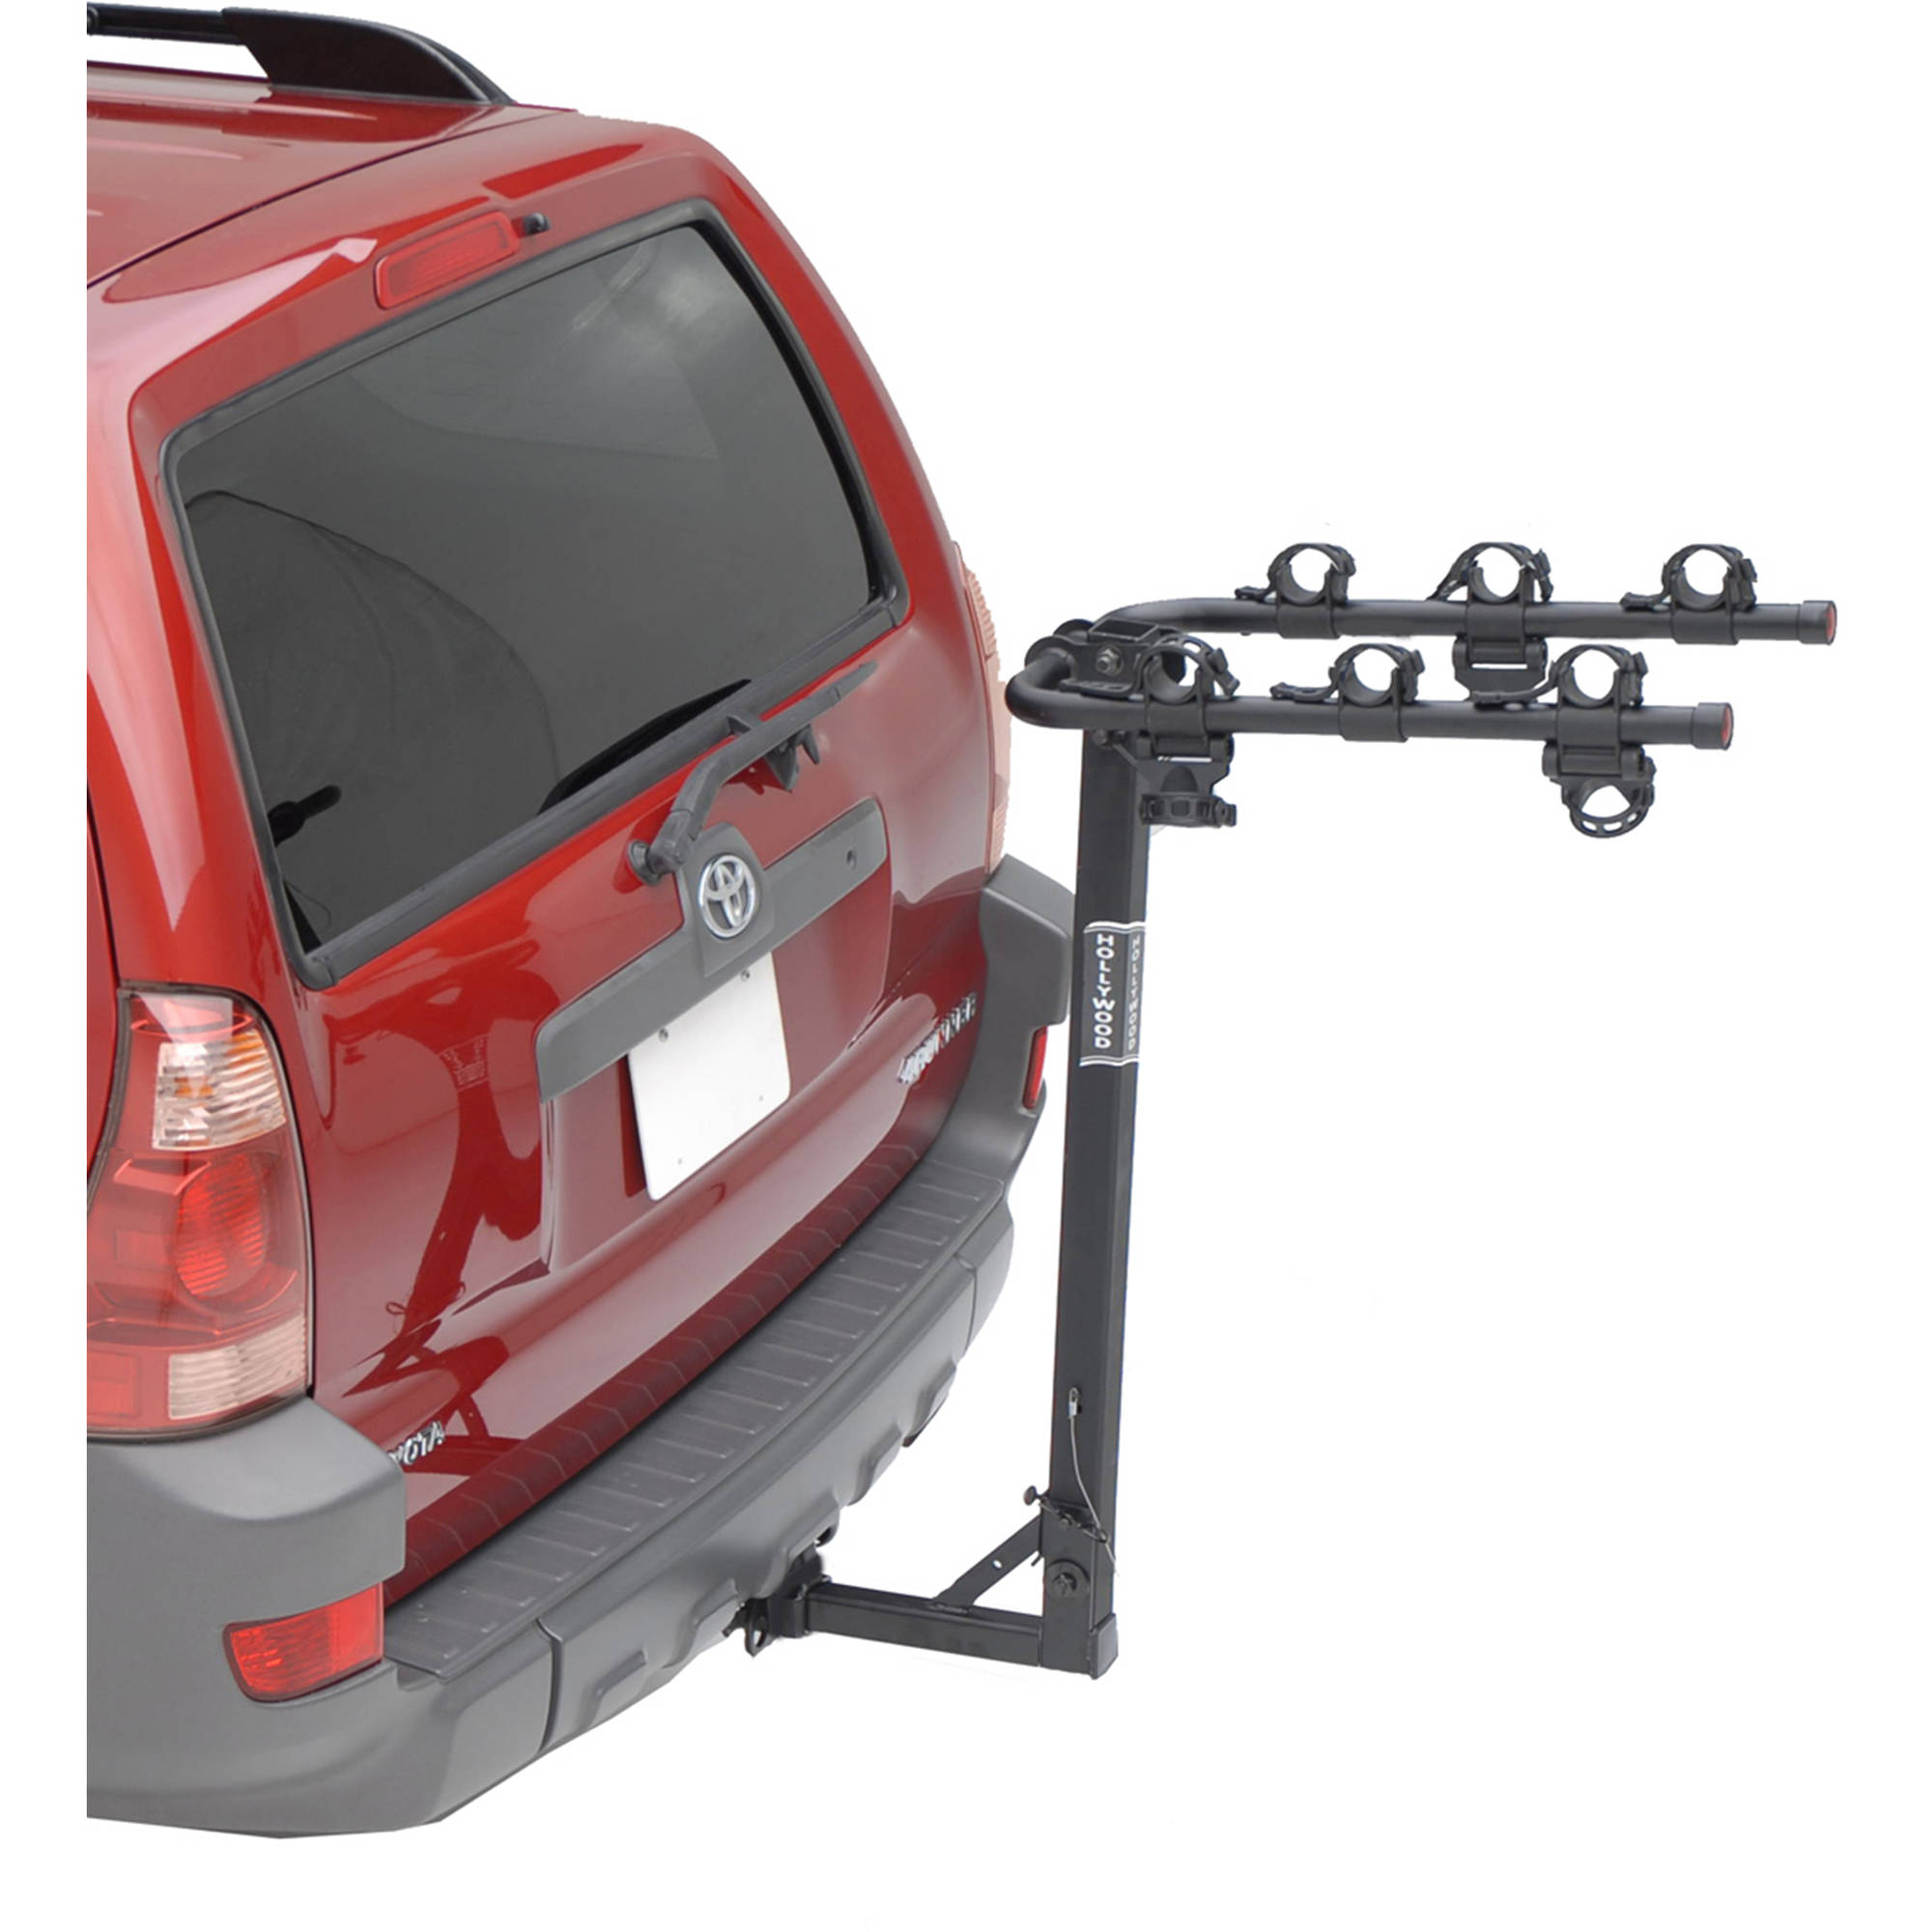 "Hollywood Racks Traveler 3-Bike Bike Rack, 1-1/4"" and 2"" Hitch"